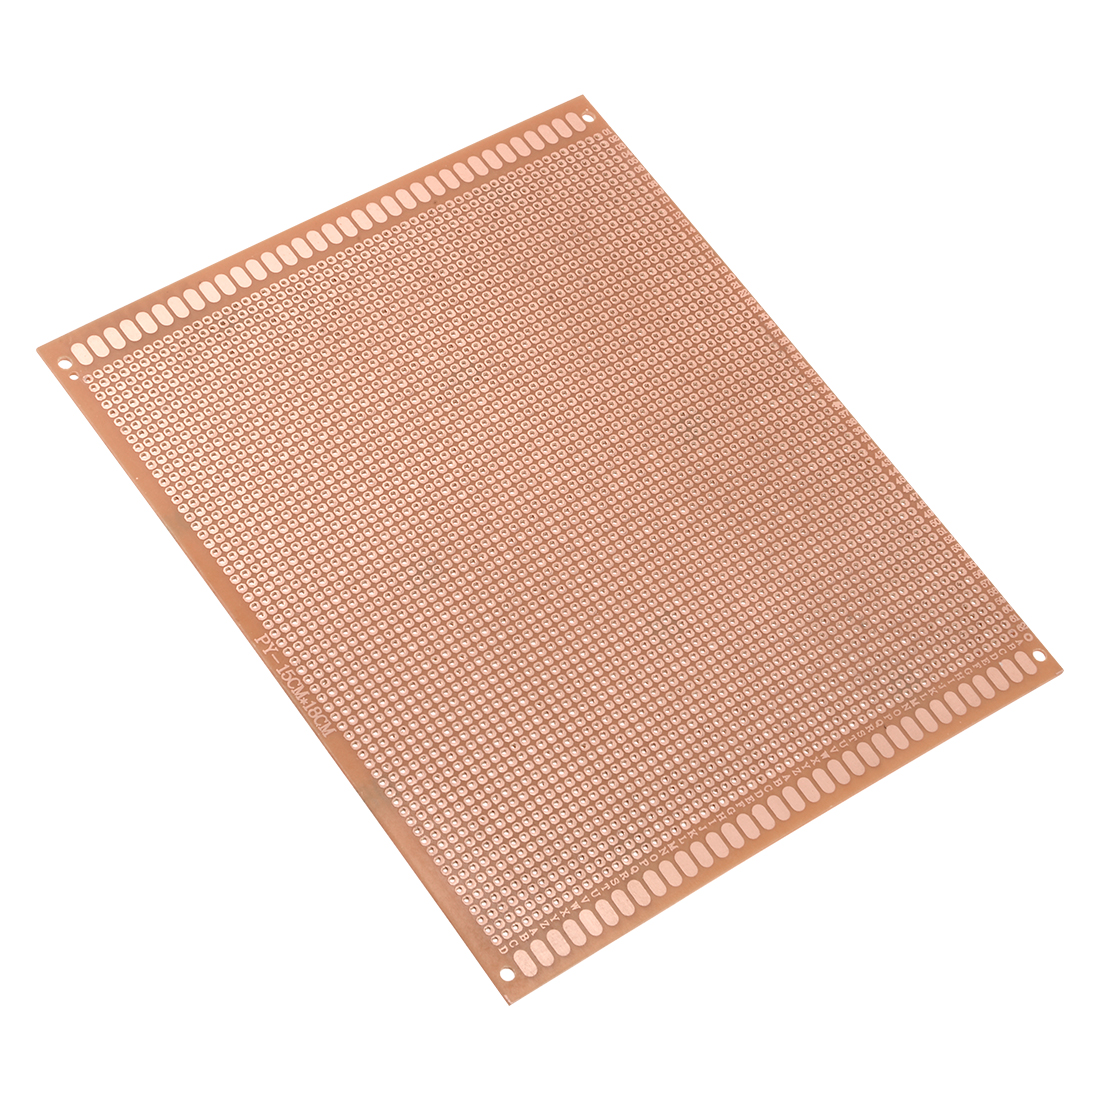 15x18cm Single Sided Universal Paper Printed Circuit Board Thickness 1.6mm 1pcs